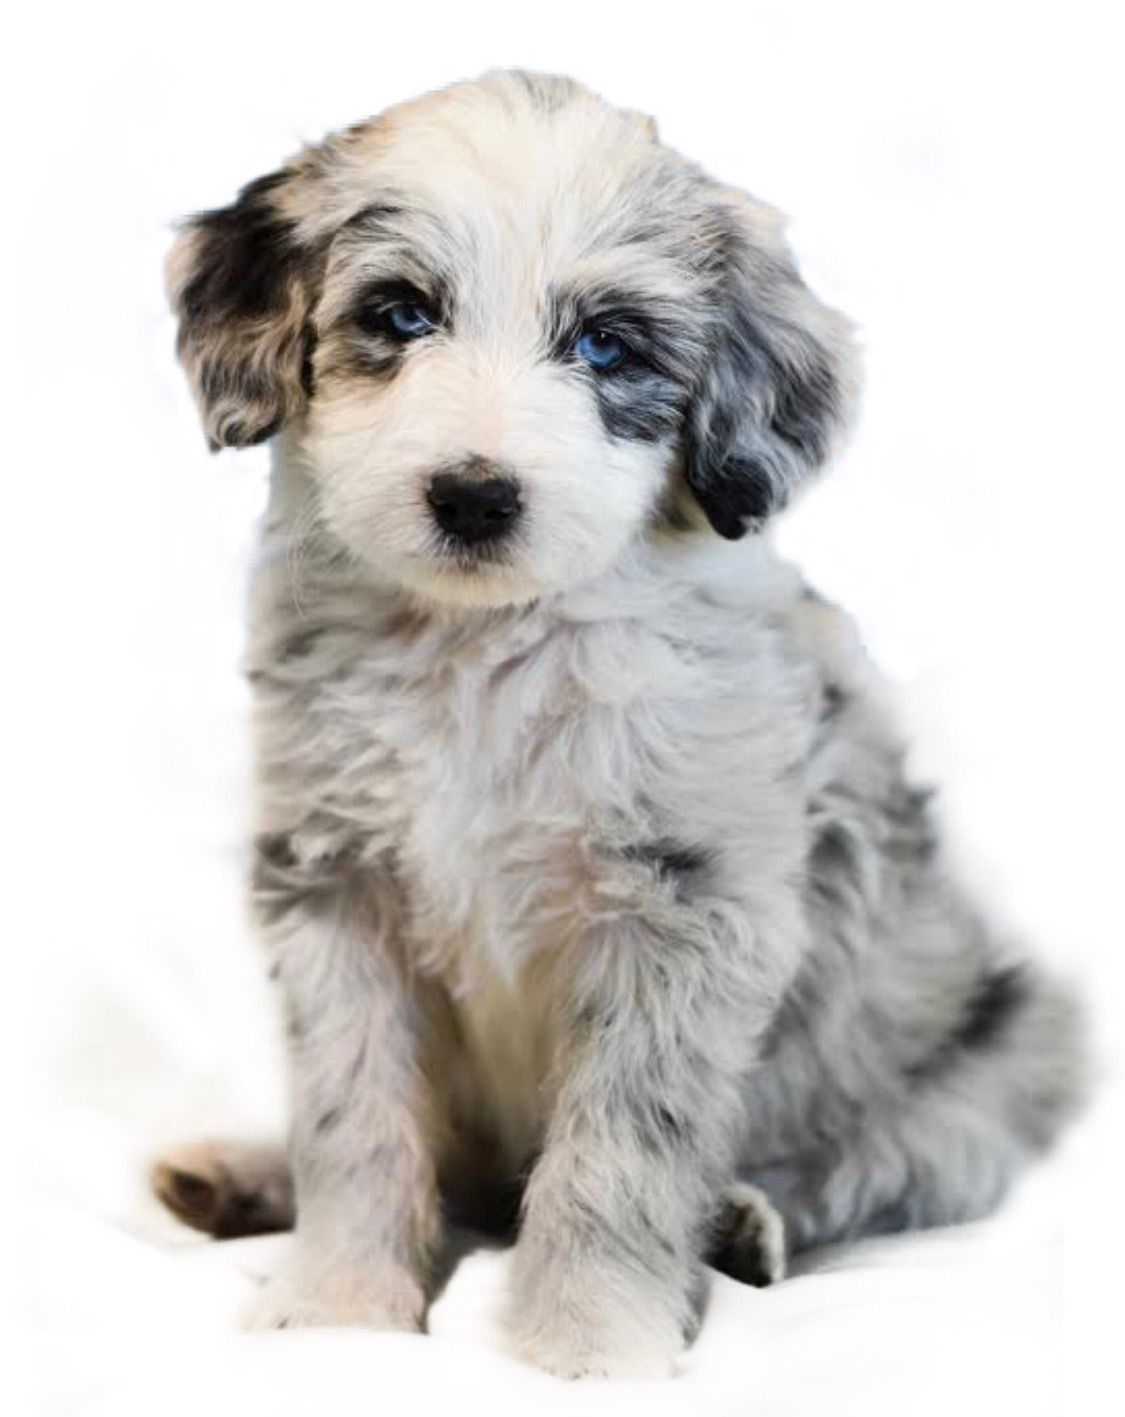 Bordoodle Cross Between A Border Collie And A Poodle With Unusual Blue Eyes Animal Antics Poodle Puppy Border Collie Cross Poodle